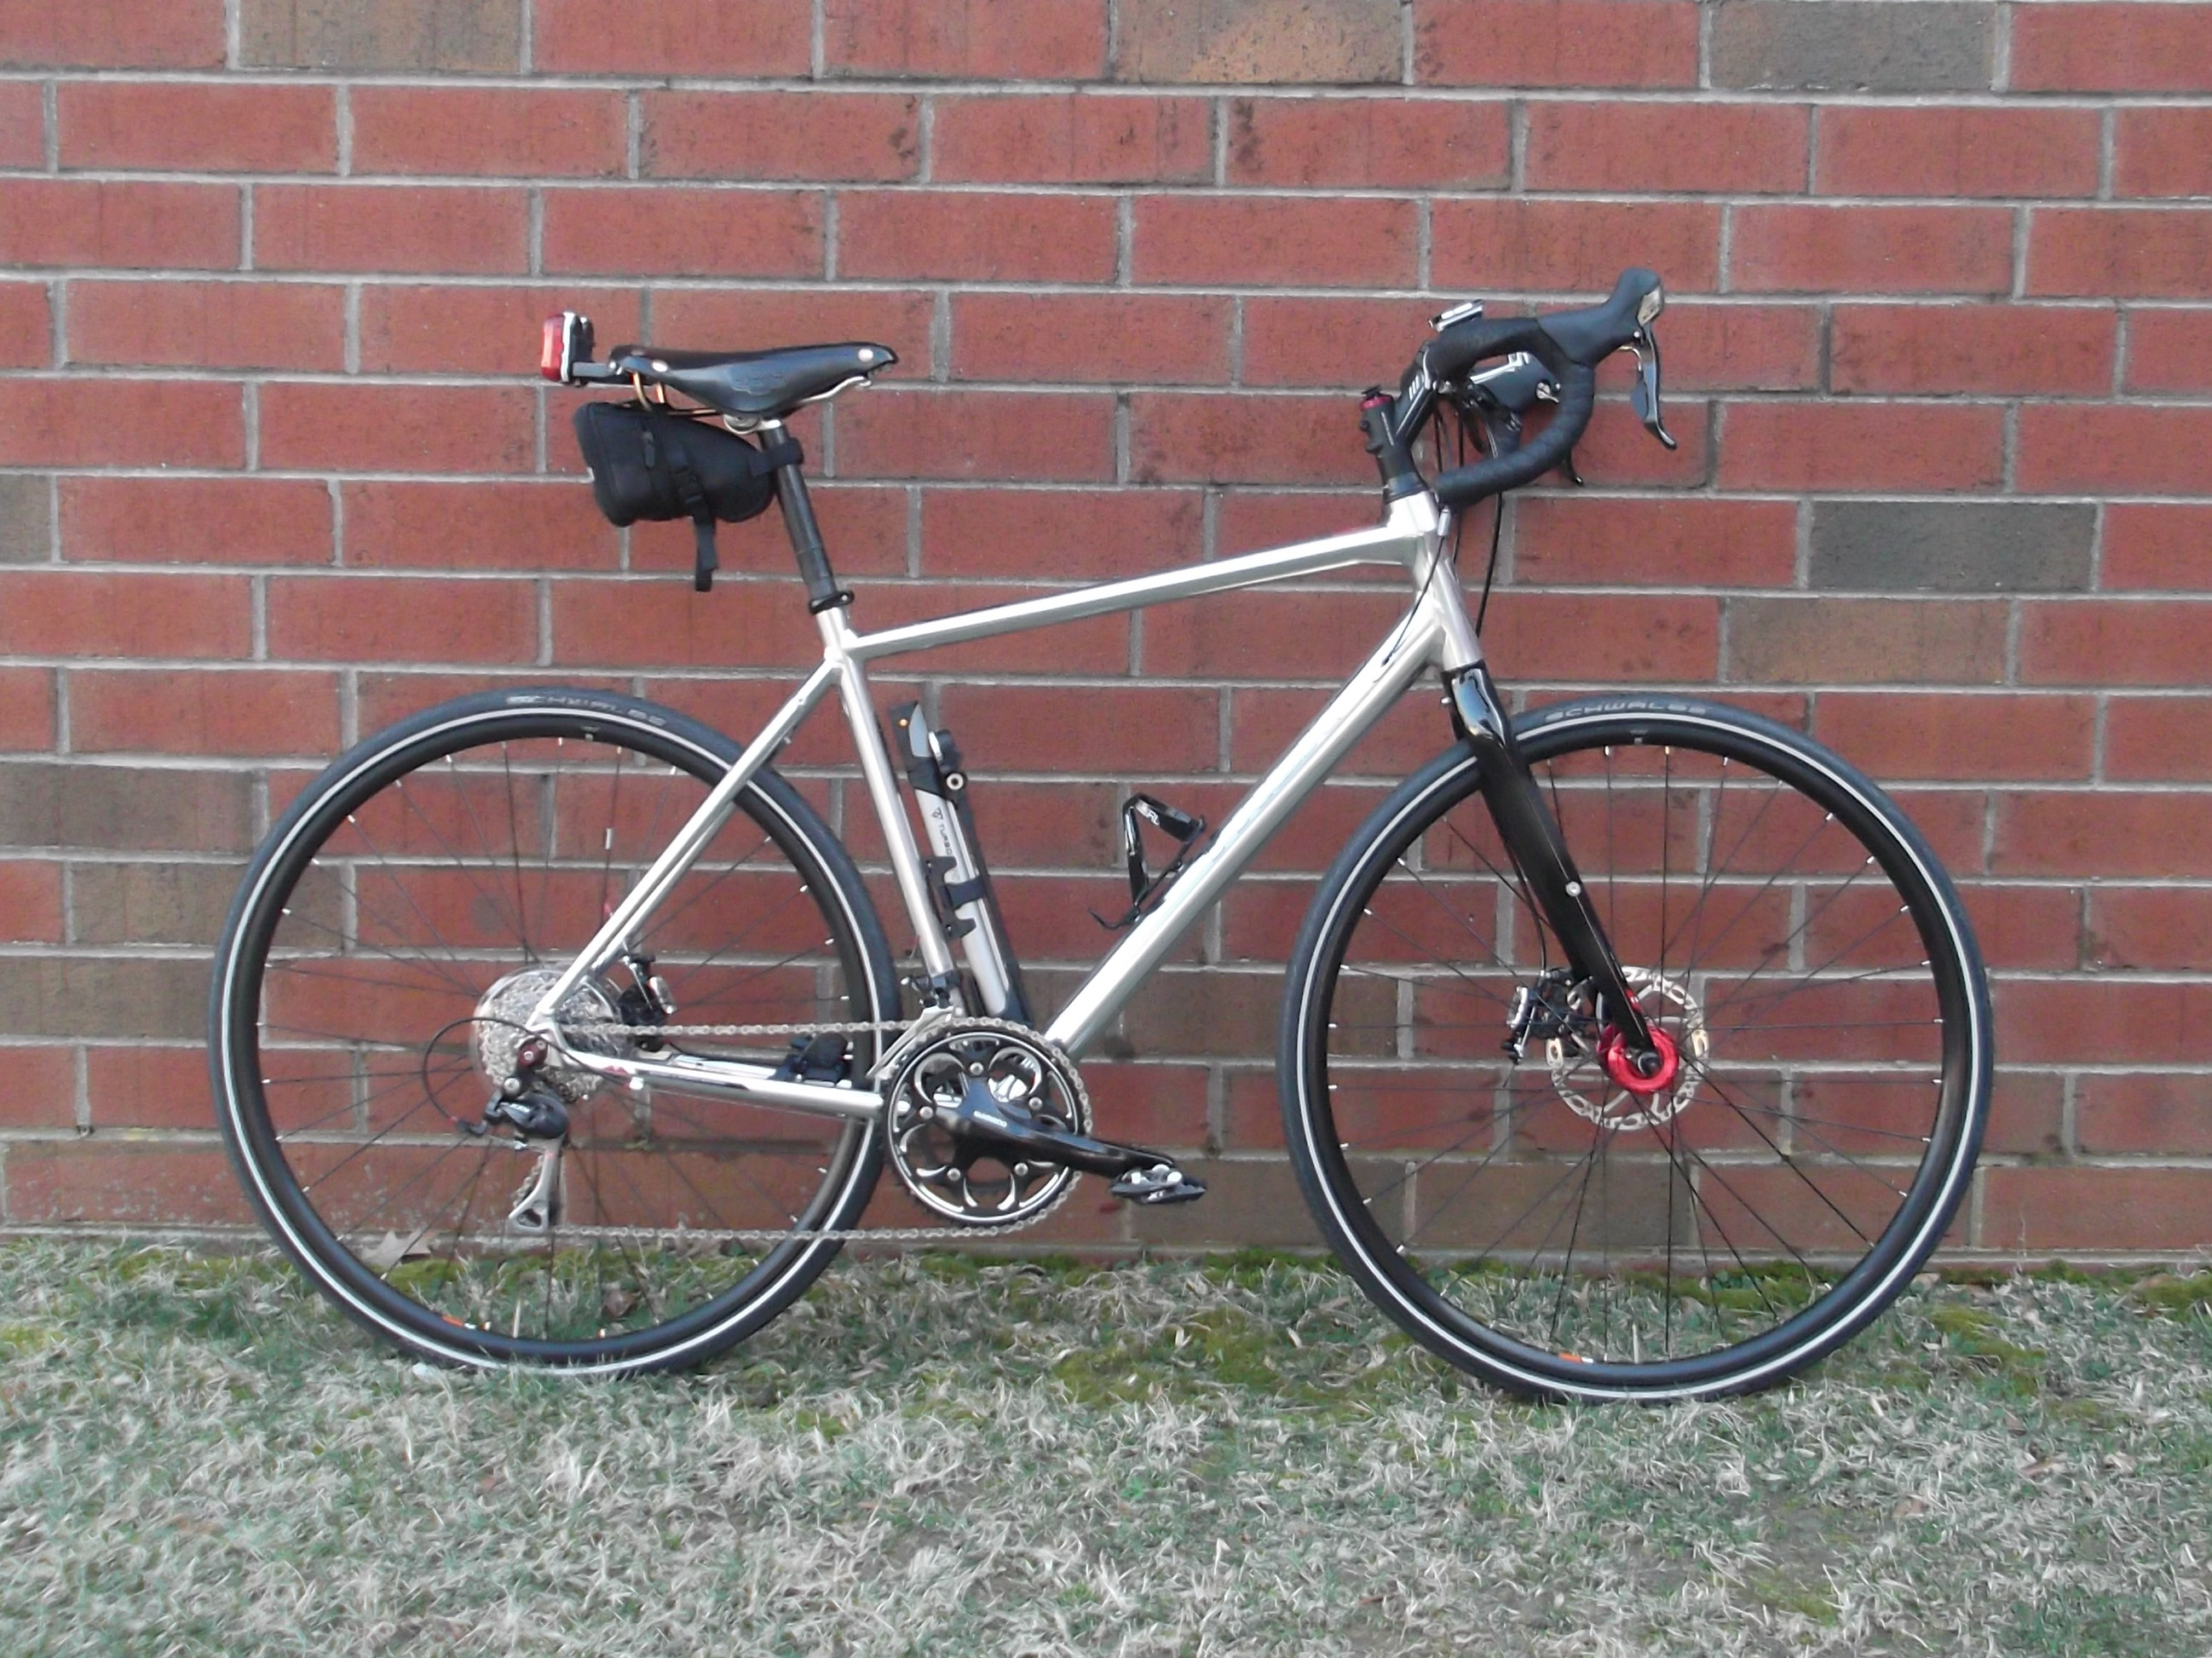 9c020be6137 It's a very comfortable bike. Still, I longed for the ability to fit  fenders AND large tires, as well as having mounting points for baggage  racks, ...